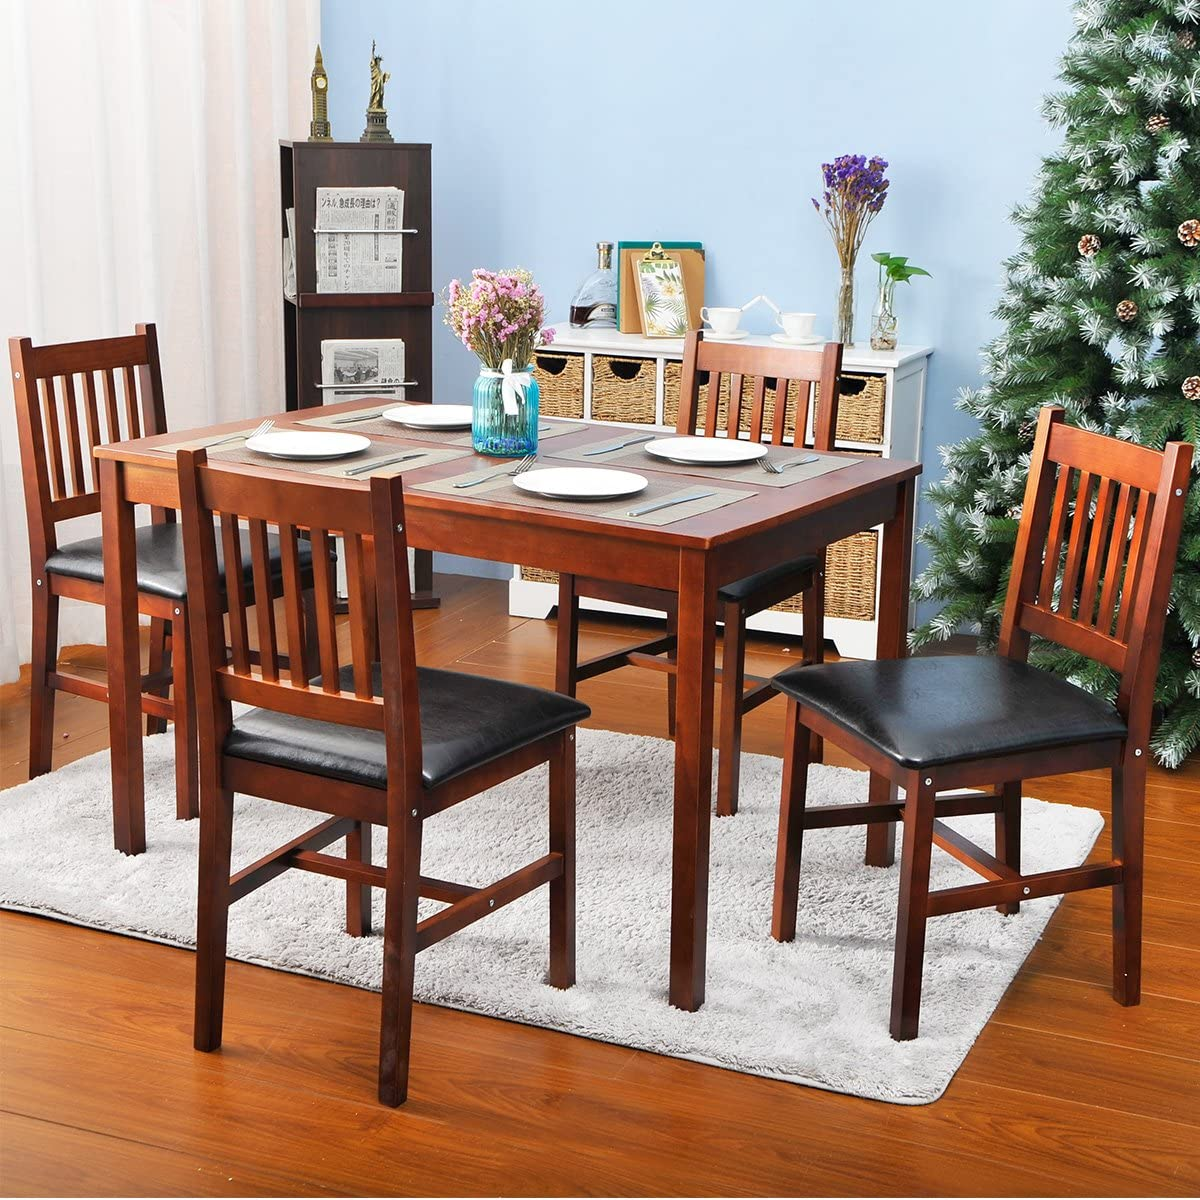 Dining Table Chair Set & Simple Living Olin Dining Sets Sc ...